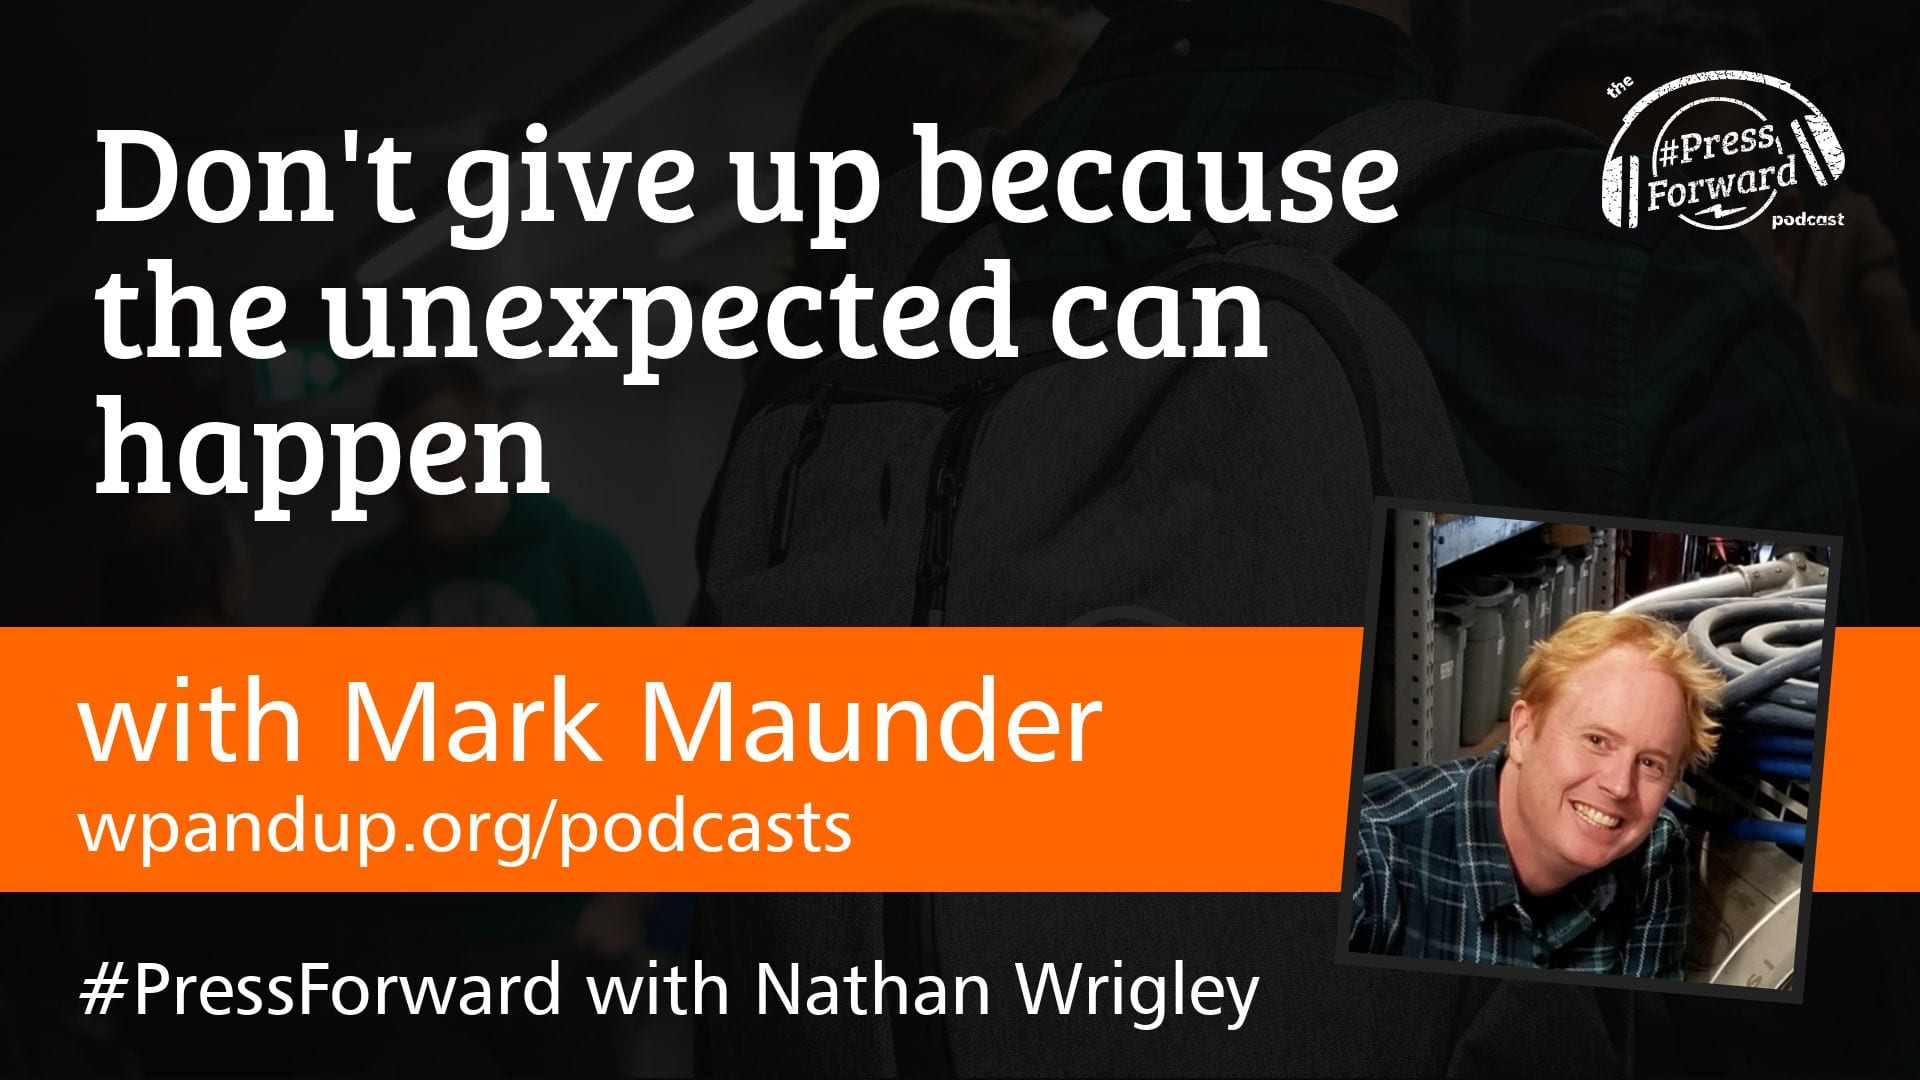 Don't give up because the unexpected can happen - #027